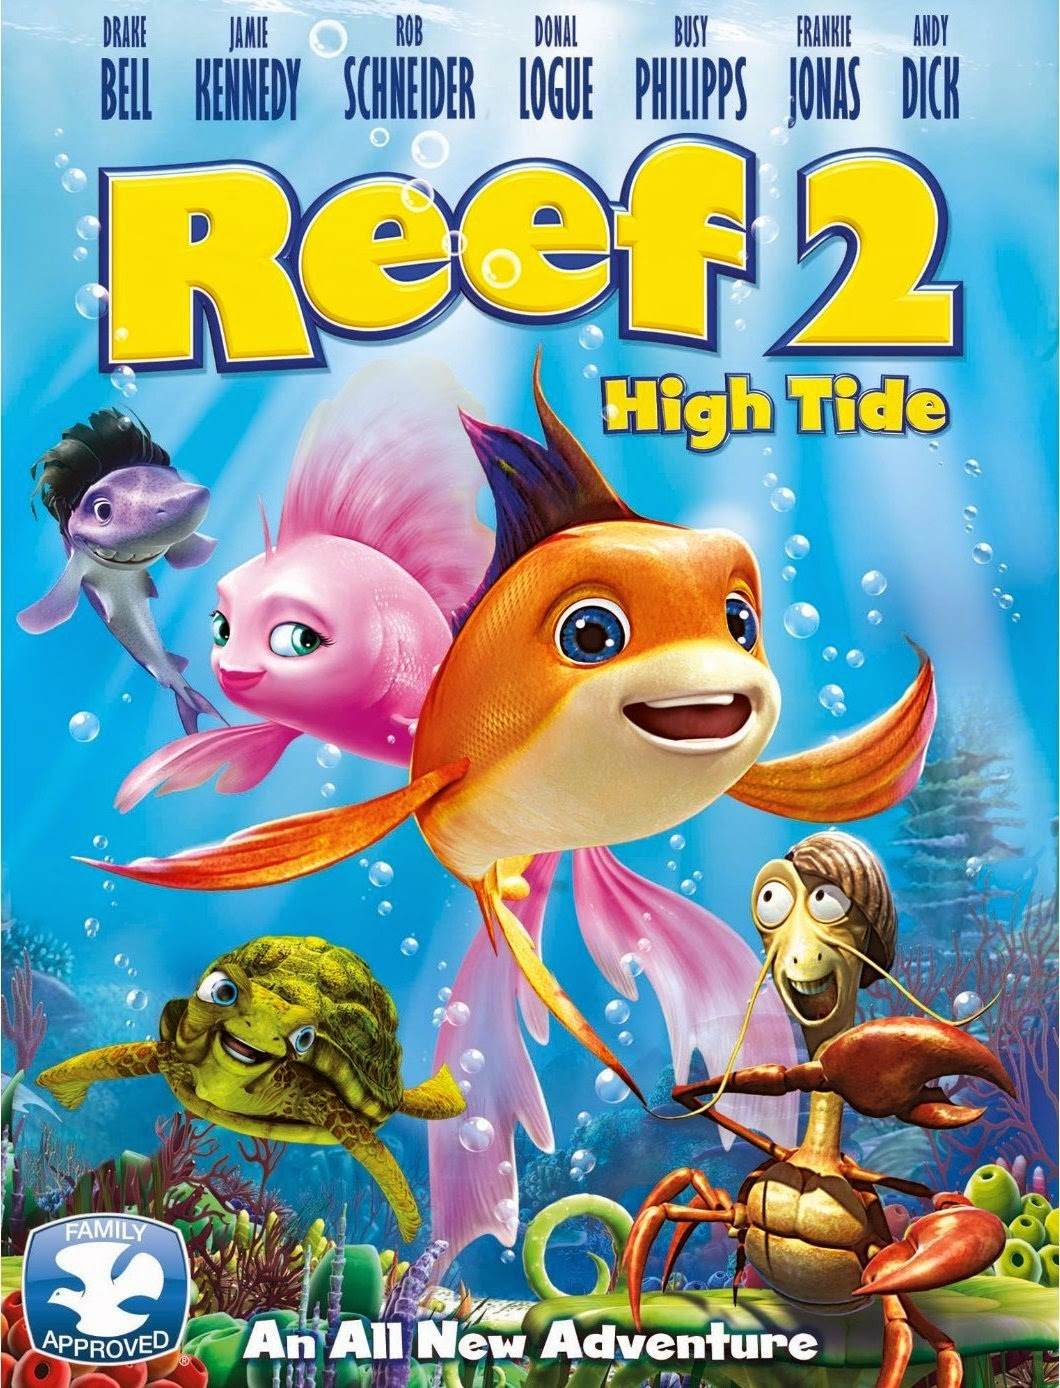 Watch The Reef 2: High Tide (2012) Online For Free Full Movie English Stream